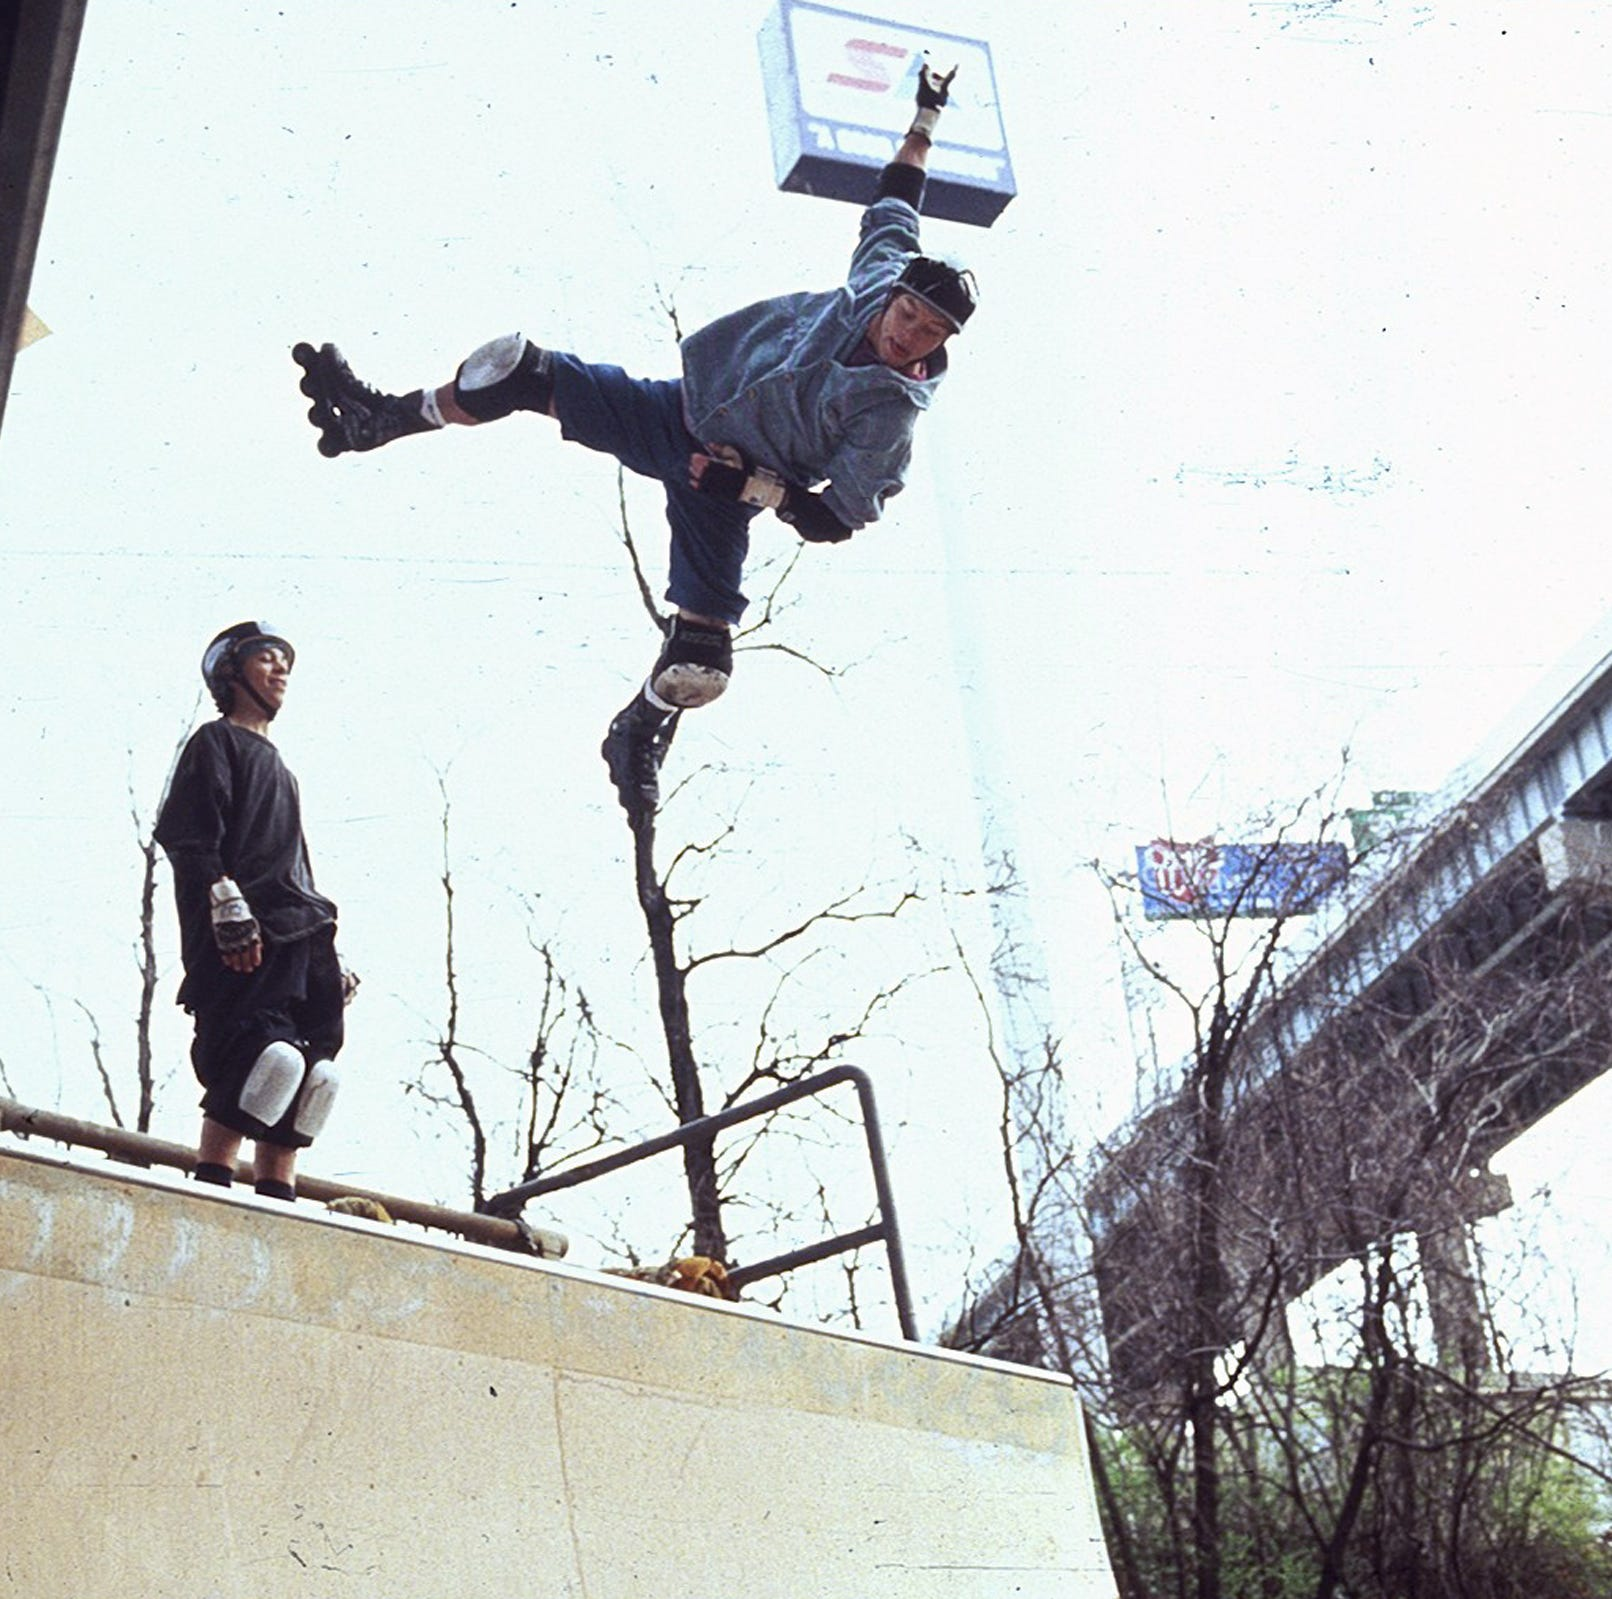 'Airborne' is the best movie from Cincinnati that you've never seen